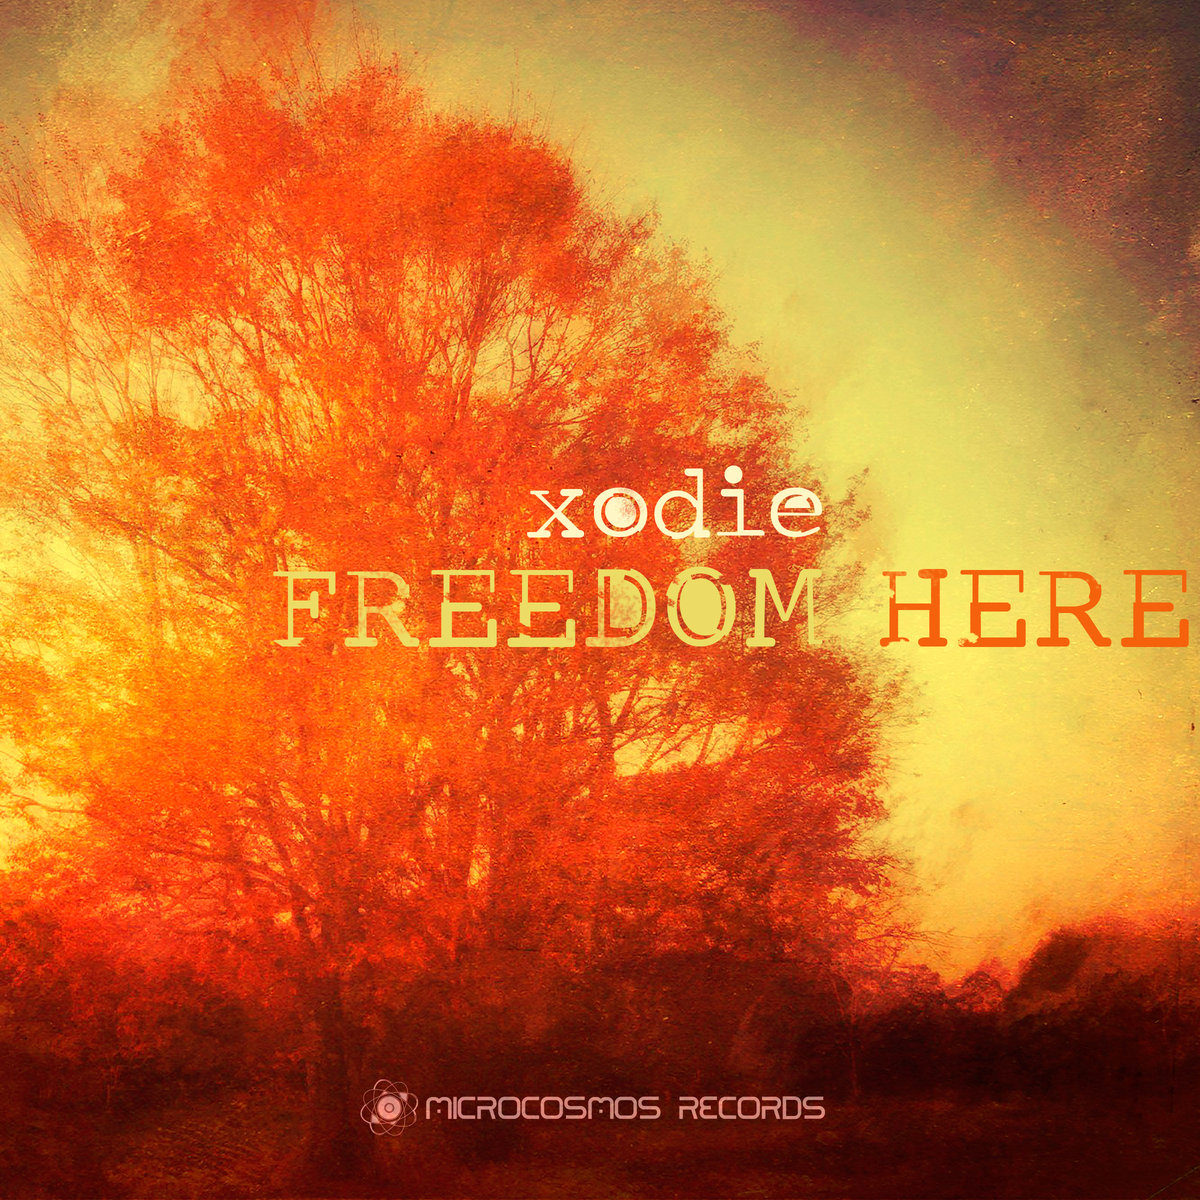 Xodie - Freedom Here